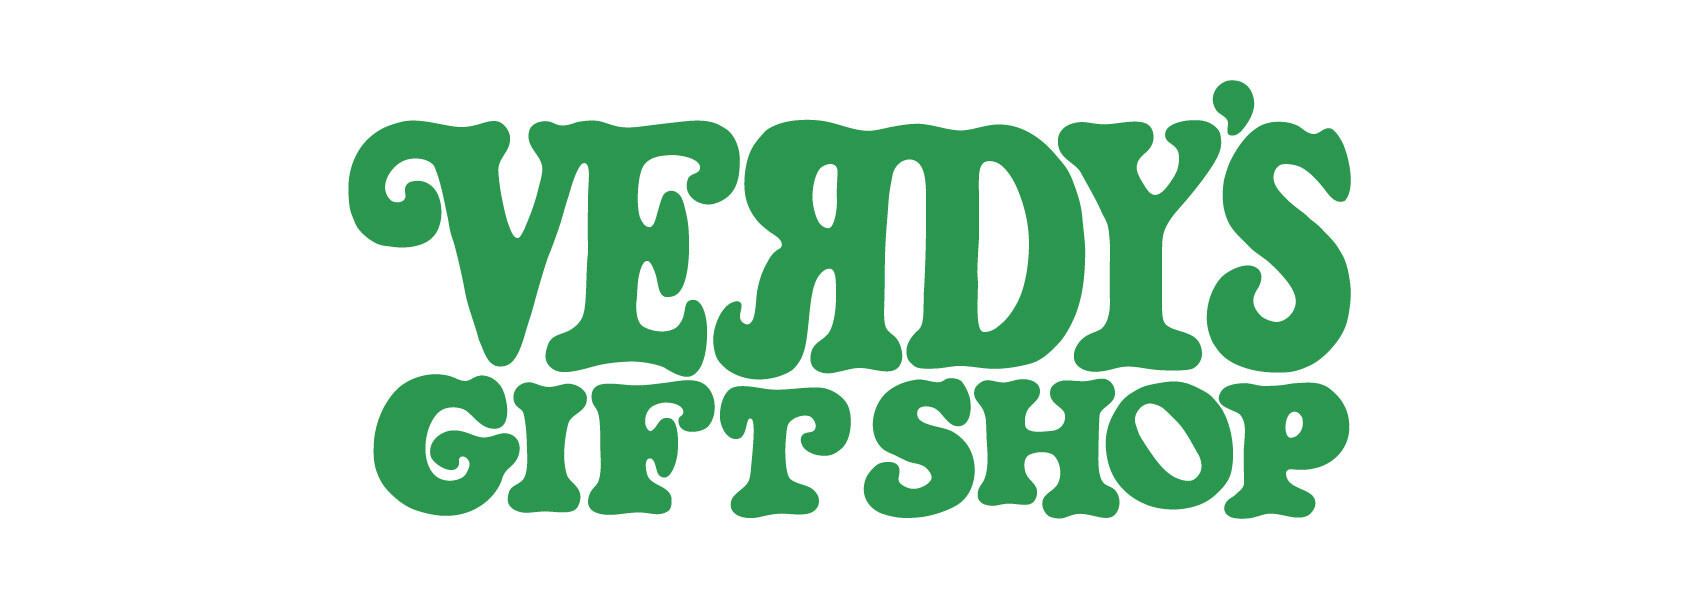 VERDY'S GIFT SHOP